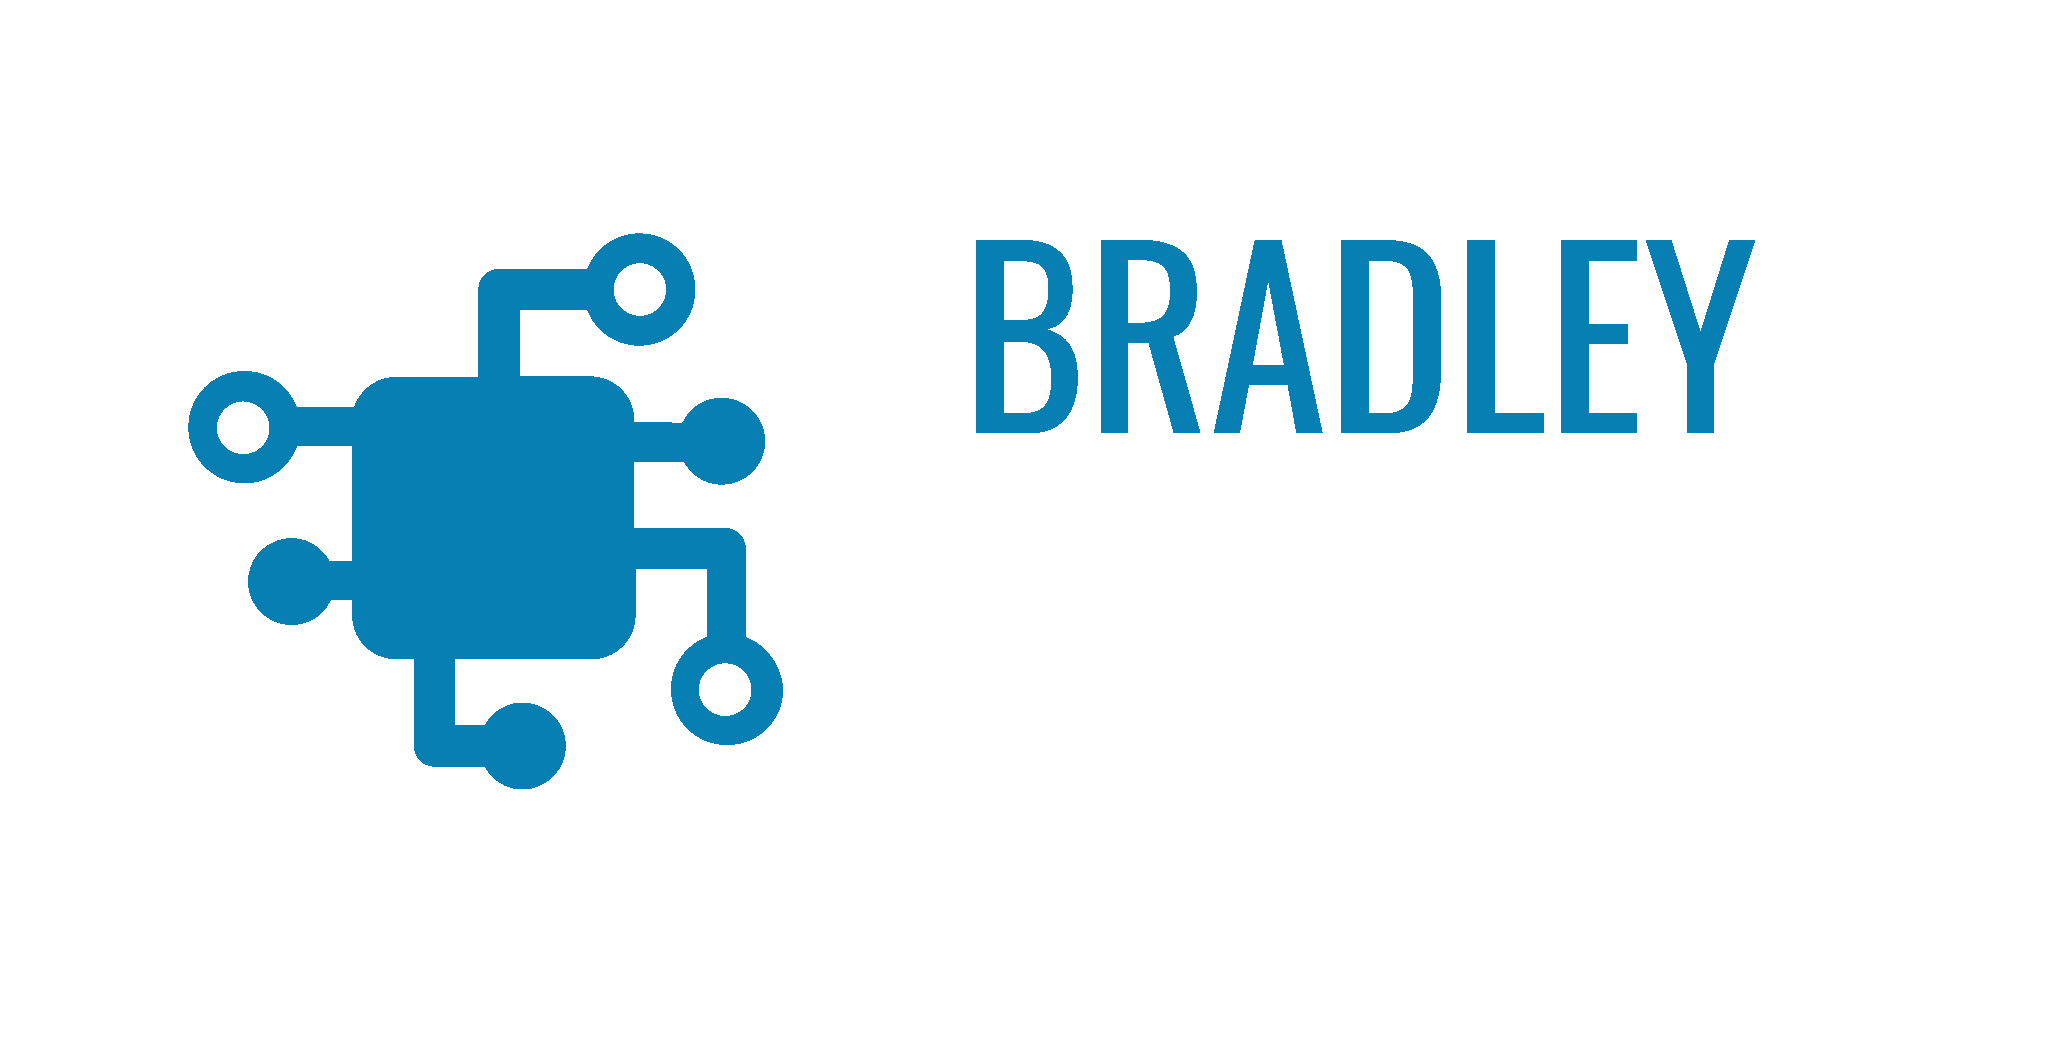 Bradley IT Services